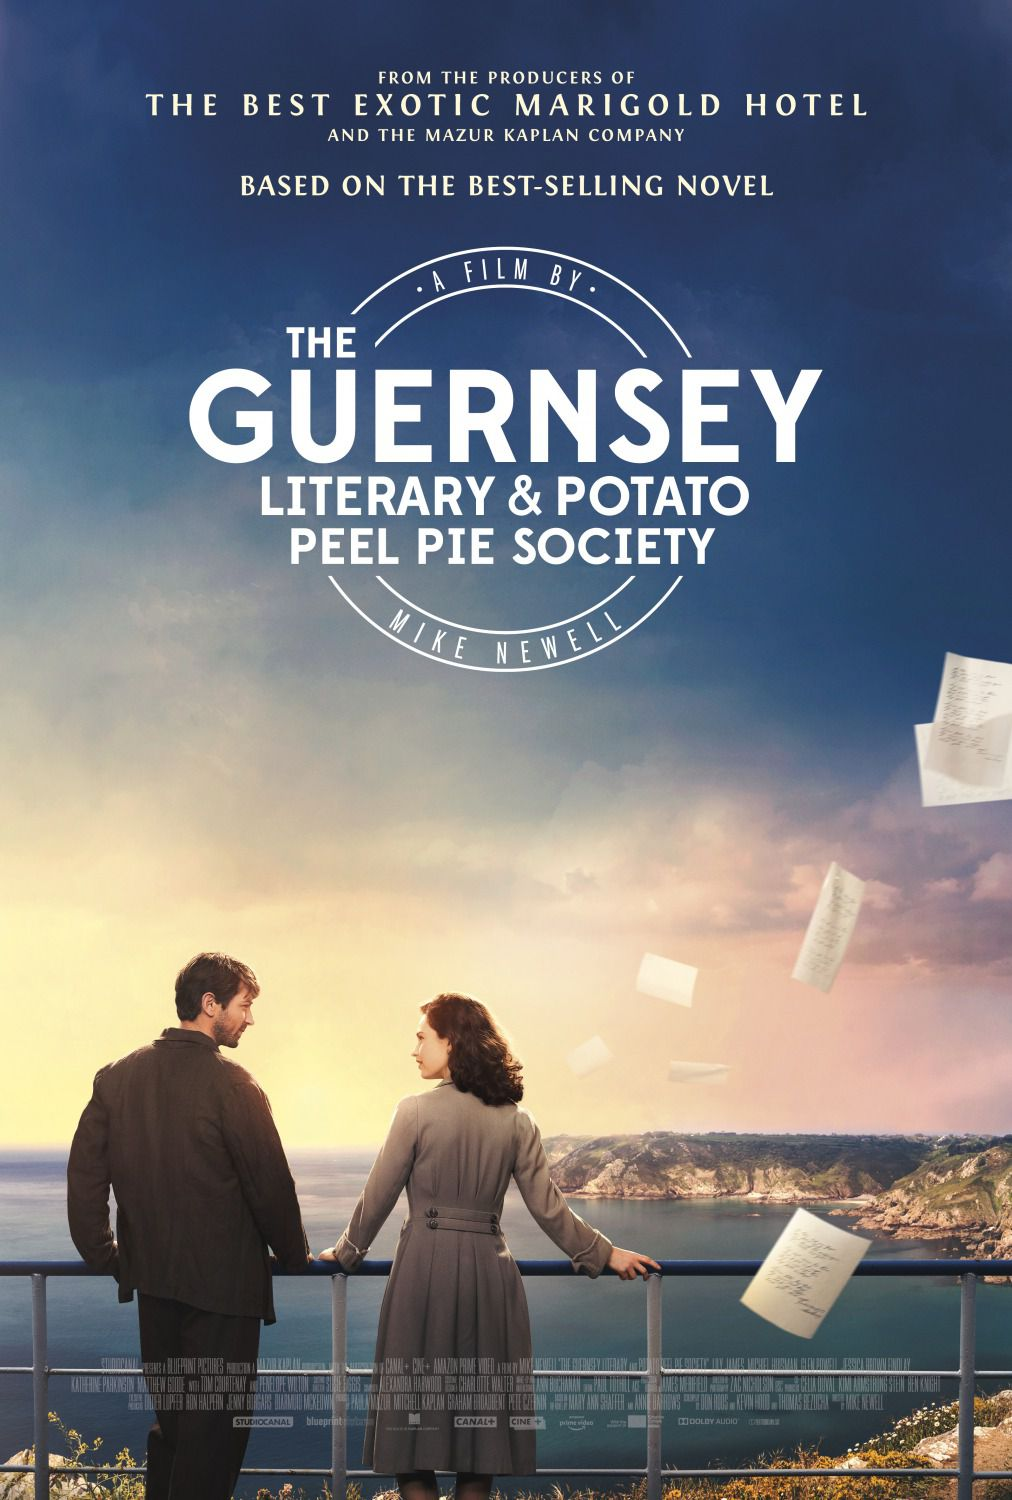 Guernsey Literary and Potato Peel Pie Society - Lily James, Jessica Brown Findlay, Matthew Goode, Michiel Huisman - poster 2018